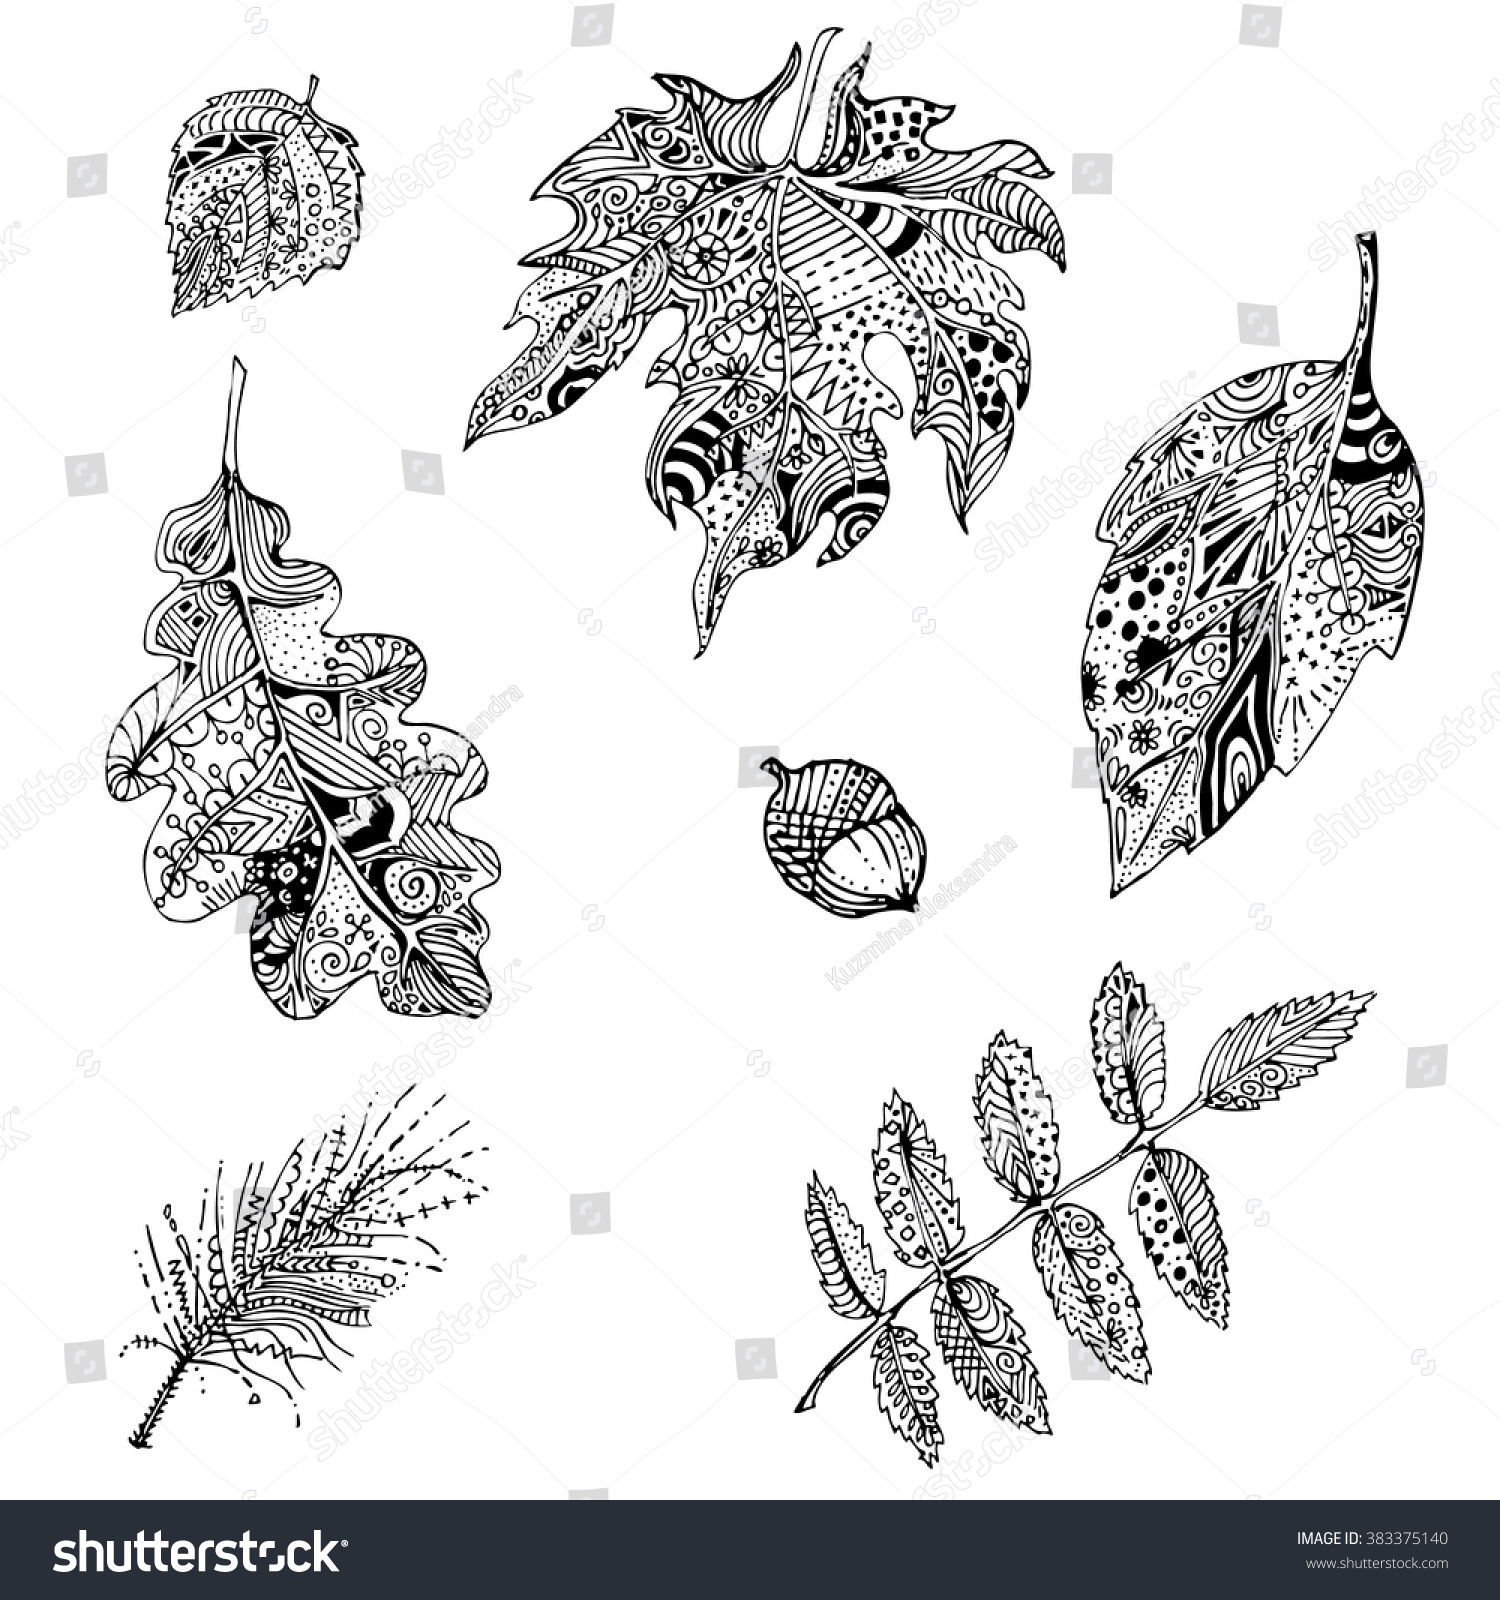 White Doodle Leaves Of Mountain Ash Oak Apple Tree Pine Branch Ethnic Patterned Vector Illustration Sketch For Adult Antistress Coloring Page